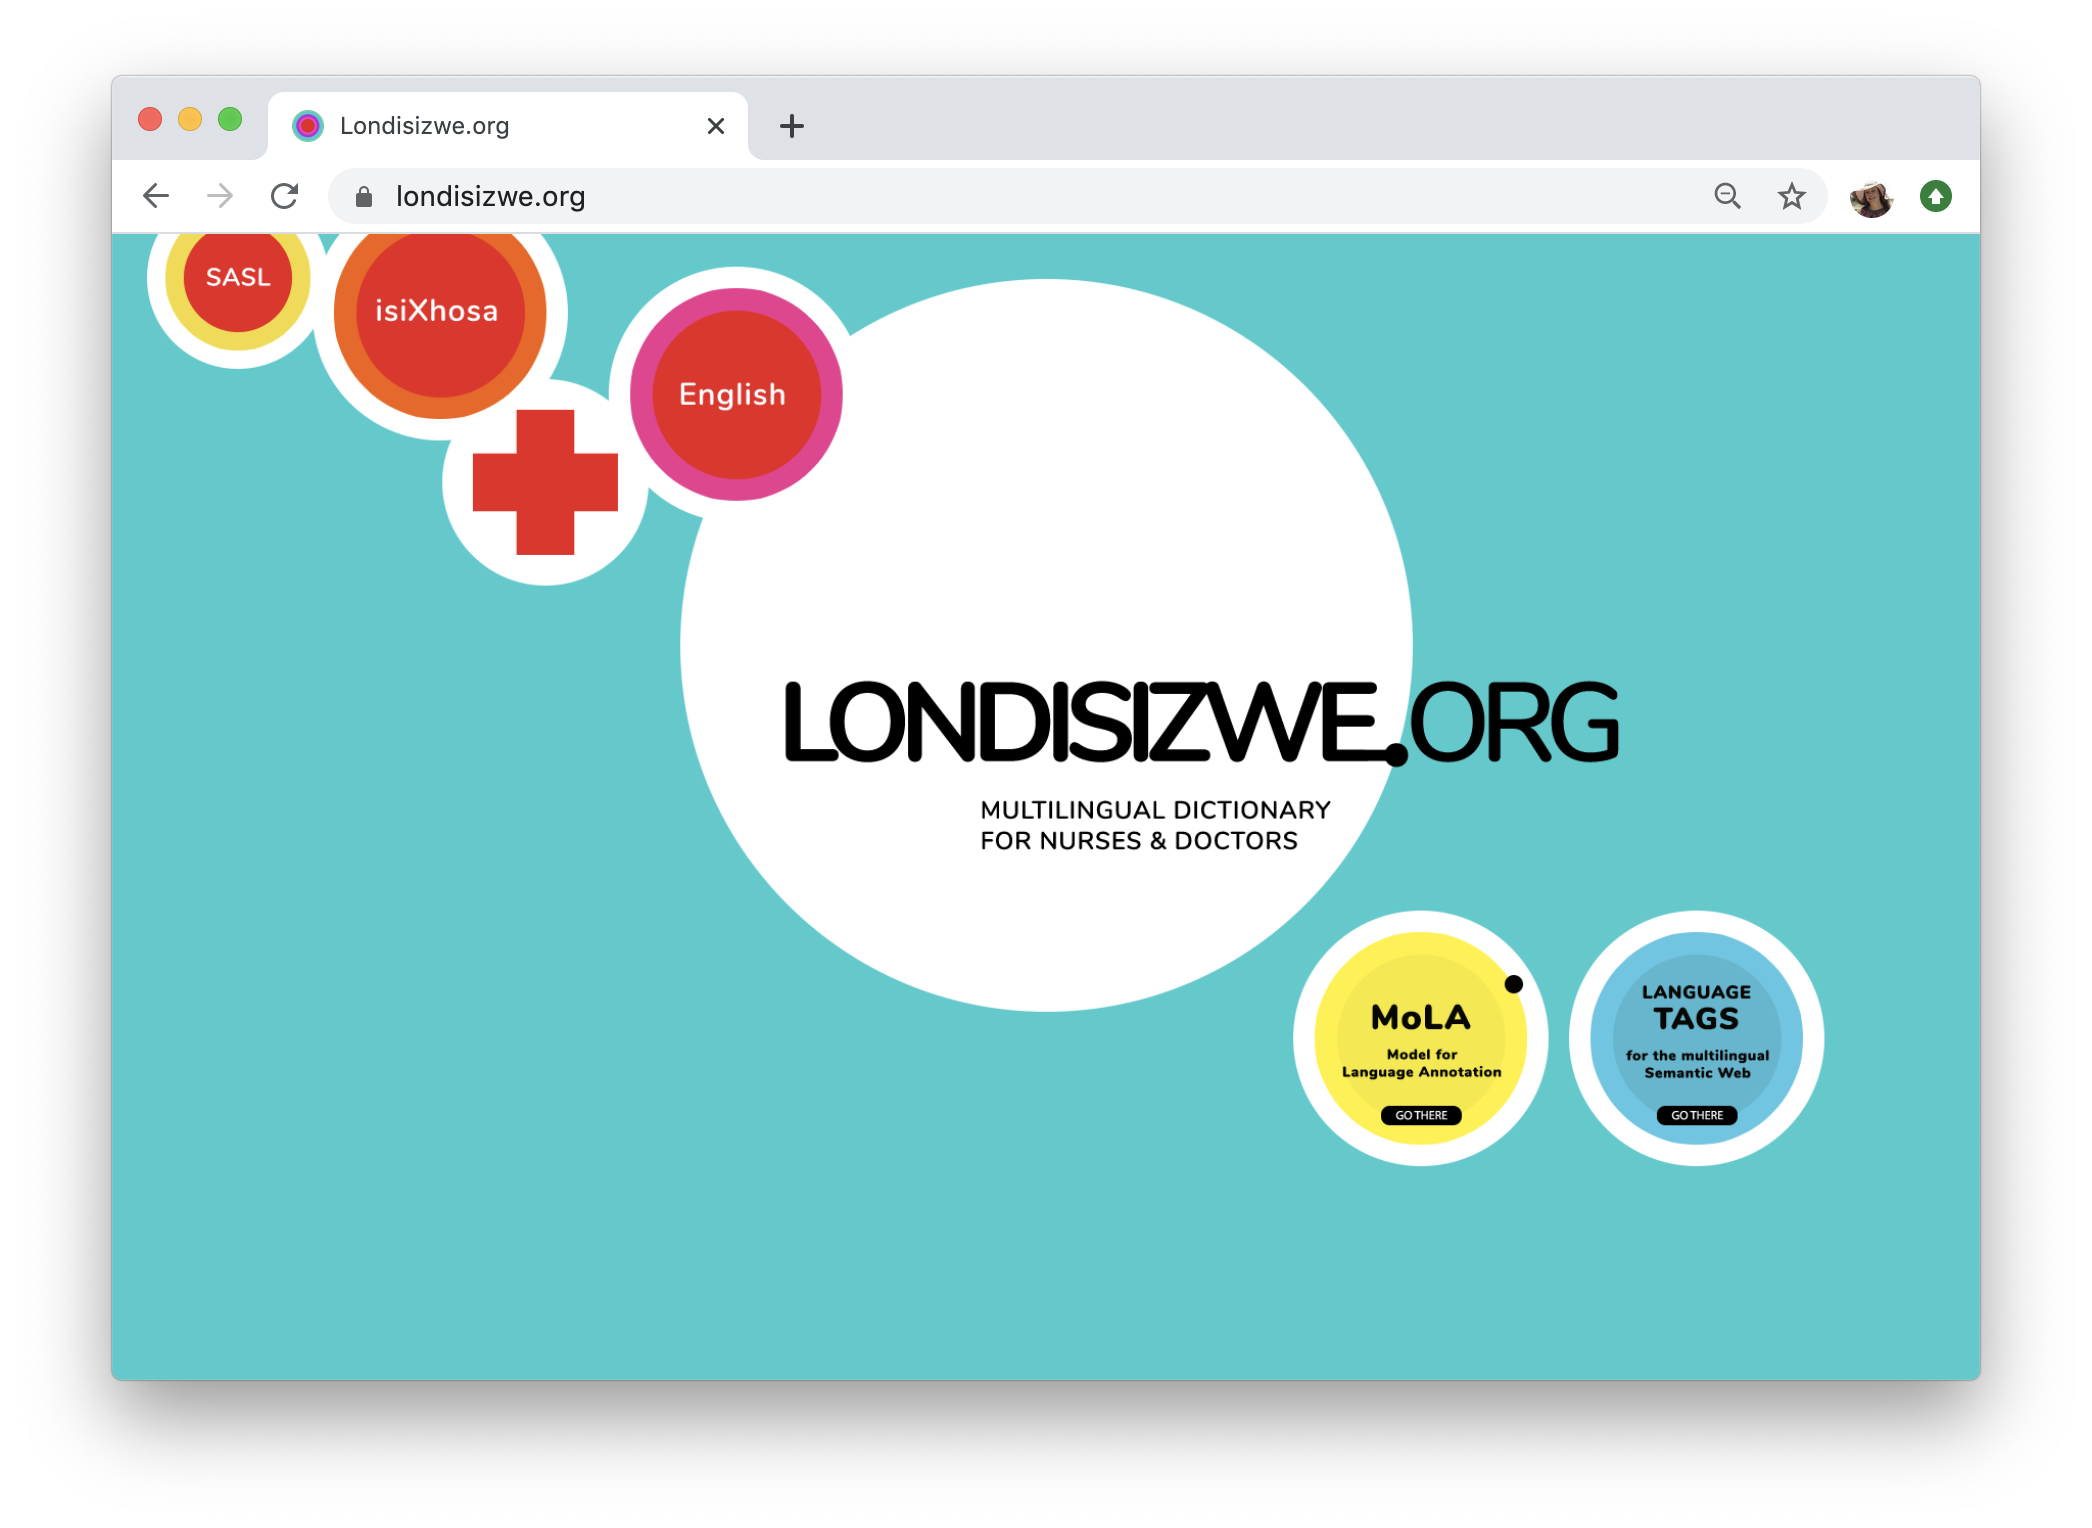 Londisizwe.org - Multilingual Dictionary for Nurses and Doctors